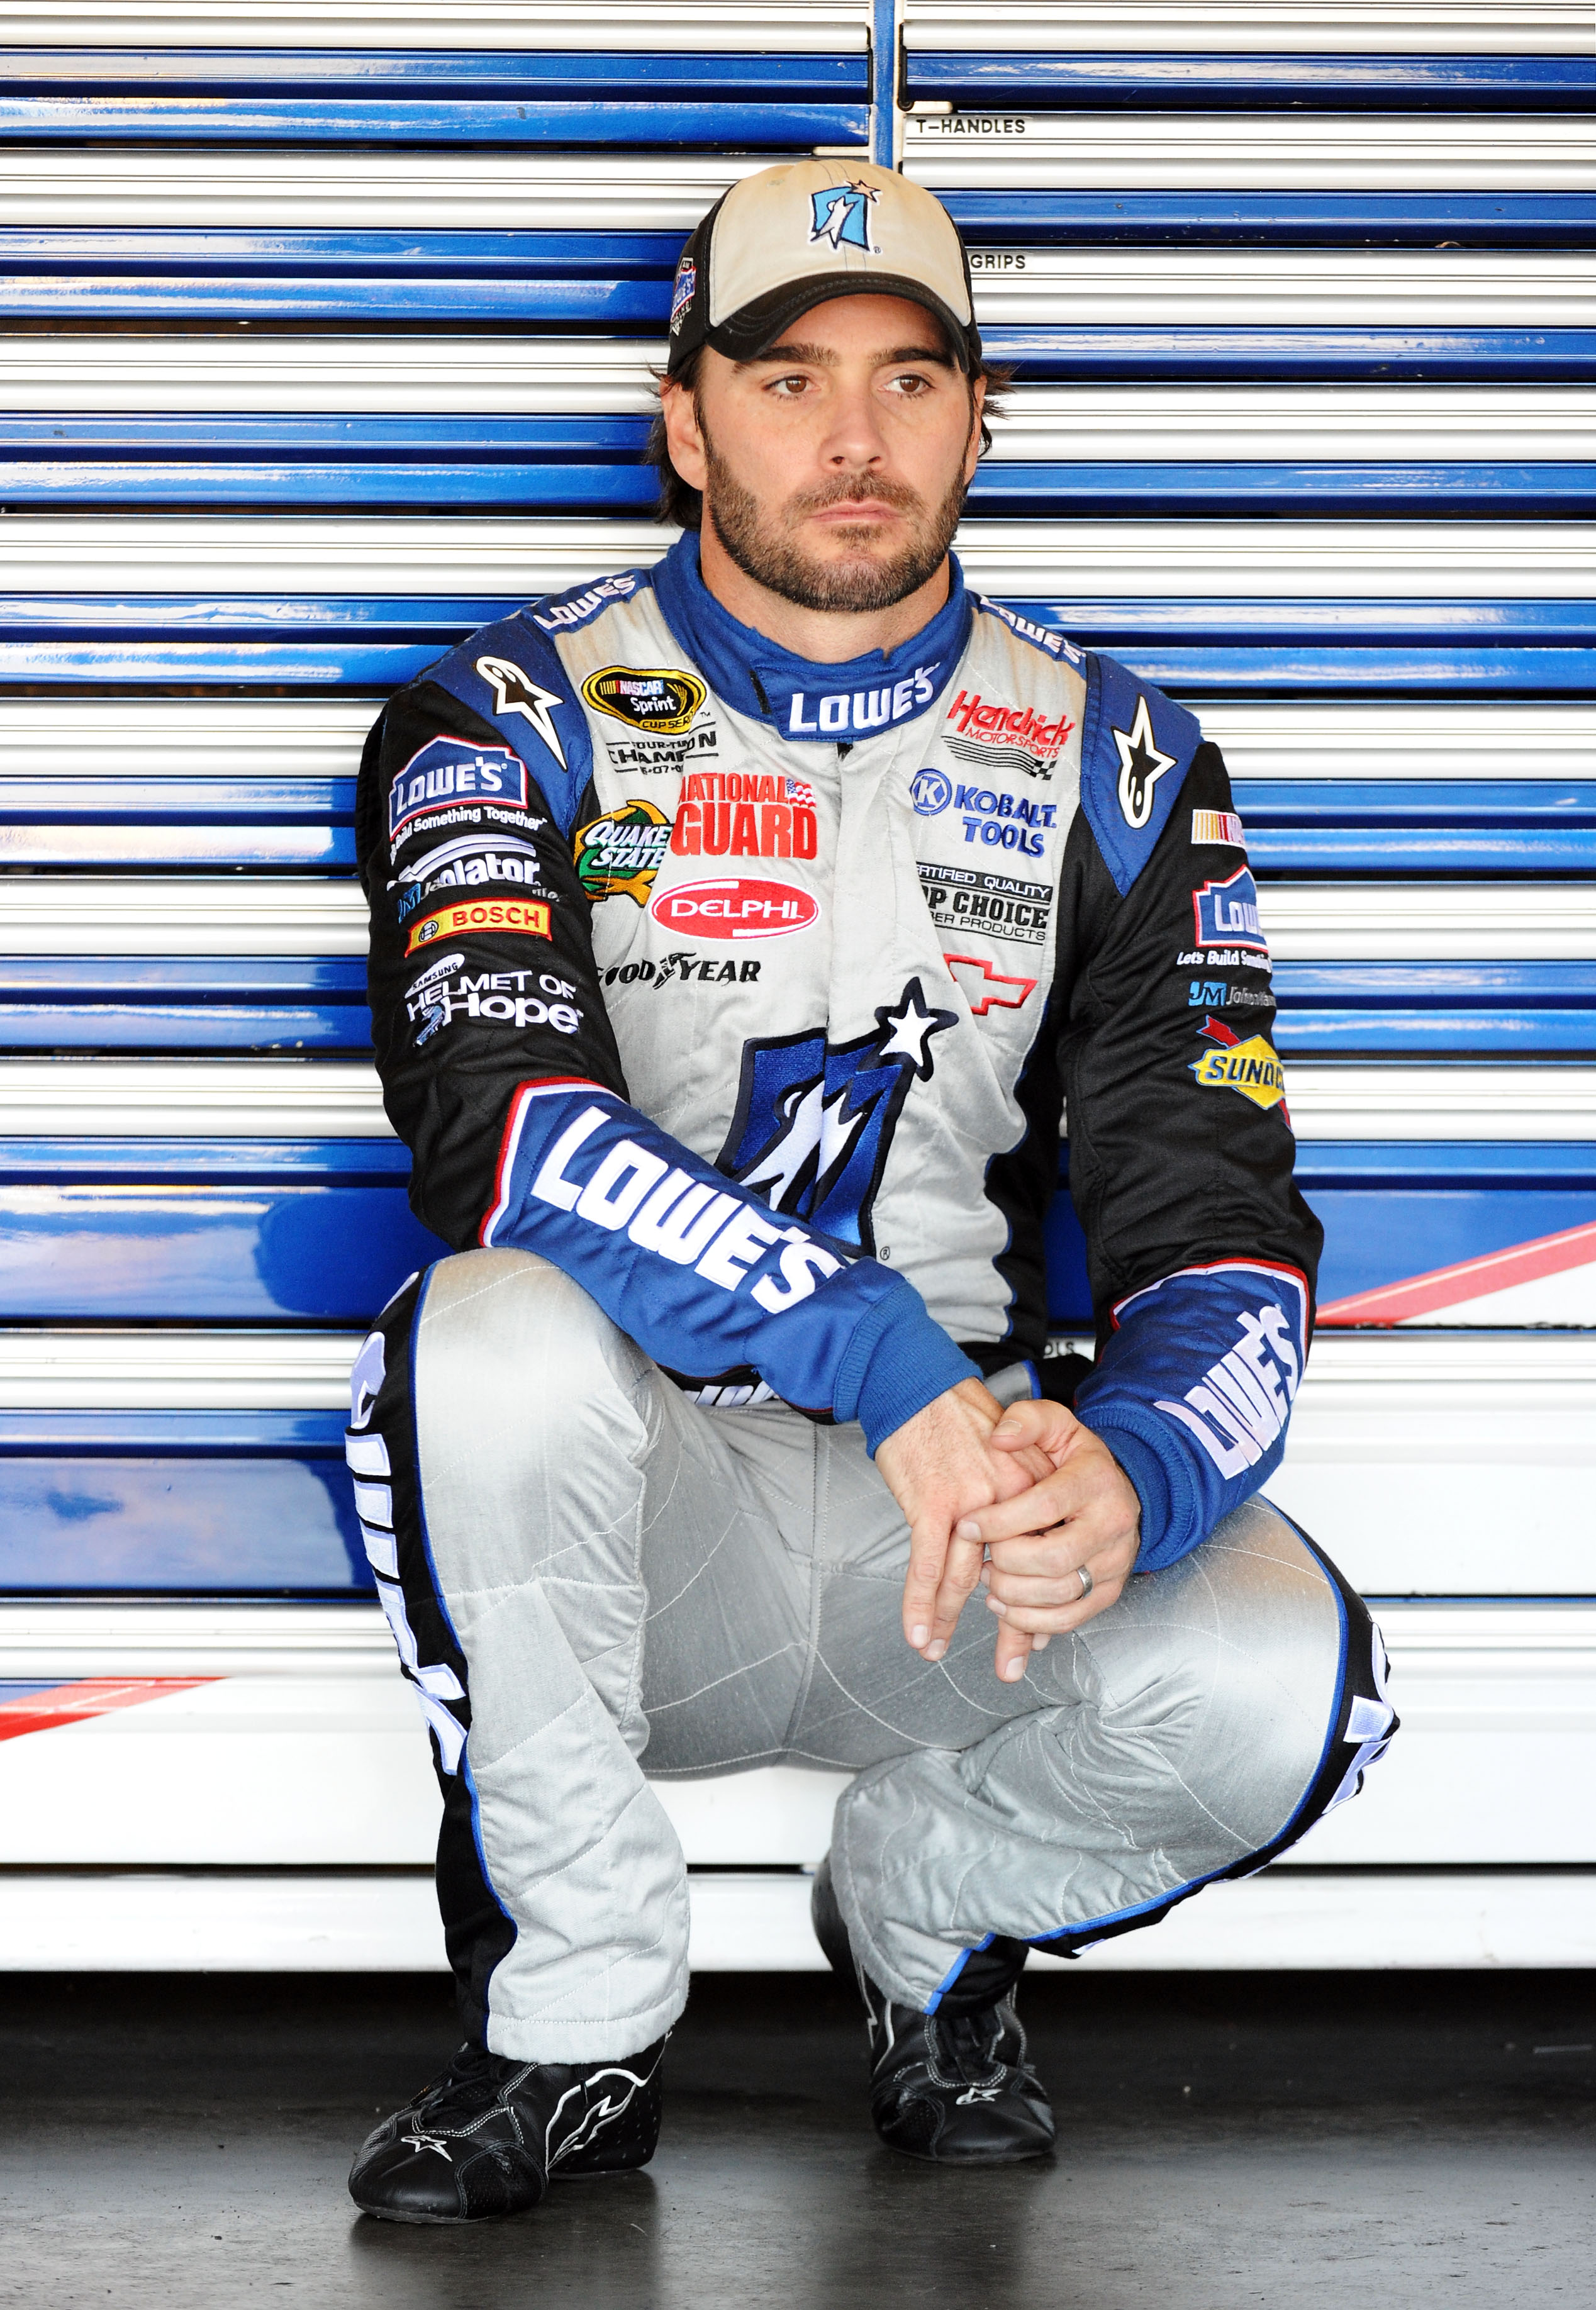 FONTANA, CA - OCTOBER 09:  Jimmie Johnson, driver of the #48 Lowe's/Jimmie Johnson Foundation Chevrolet, waits in the garage during practice for the NASCAR Sprint Cup Series Pepsi Max 400 on October 9, 2010 in Fontana, California.  (Photo by Harry How/Get